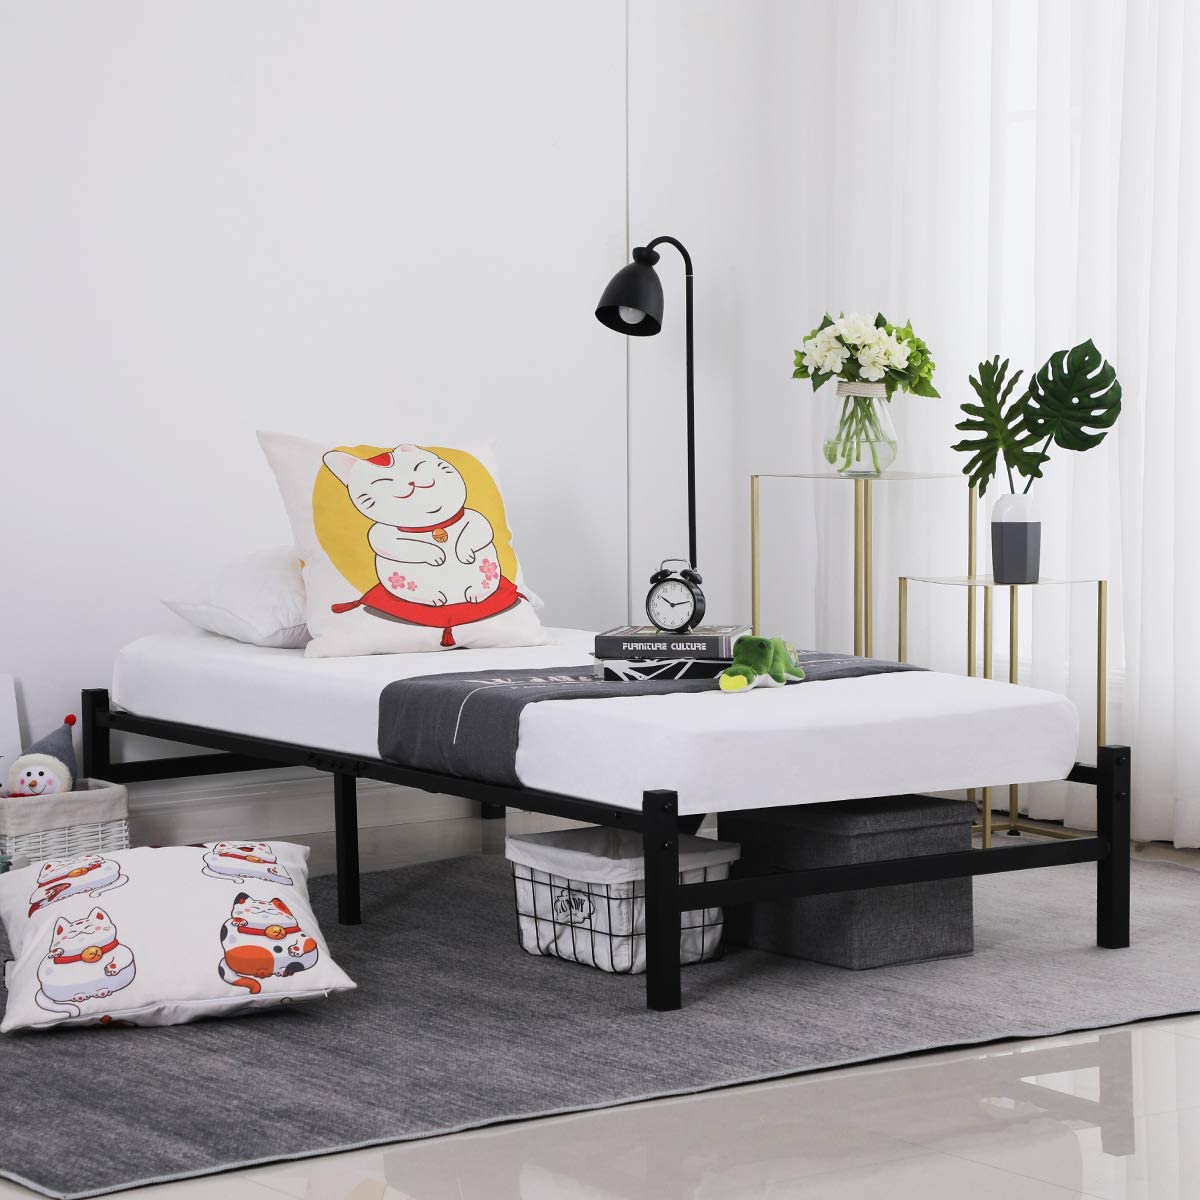 No Box Spring Needed Full GreenForest 14 inch Platform Bed Frame with Heavy Duty Steel Slats